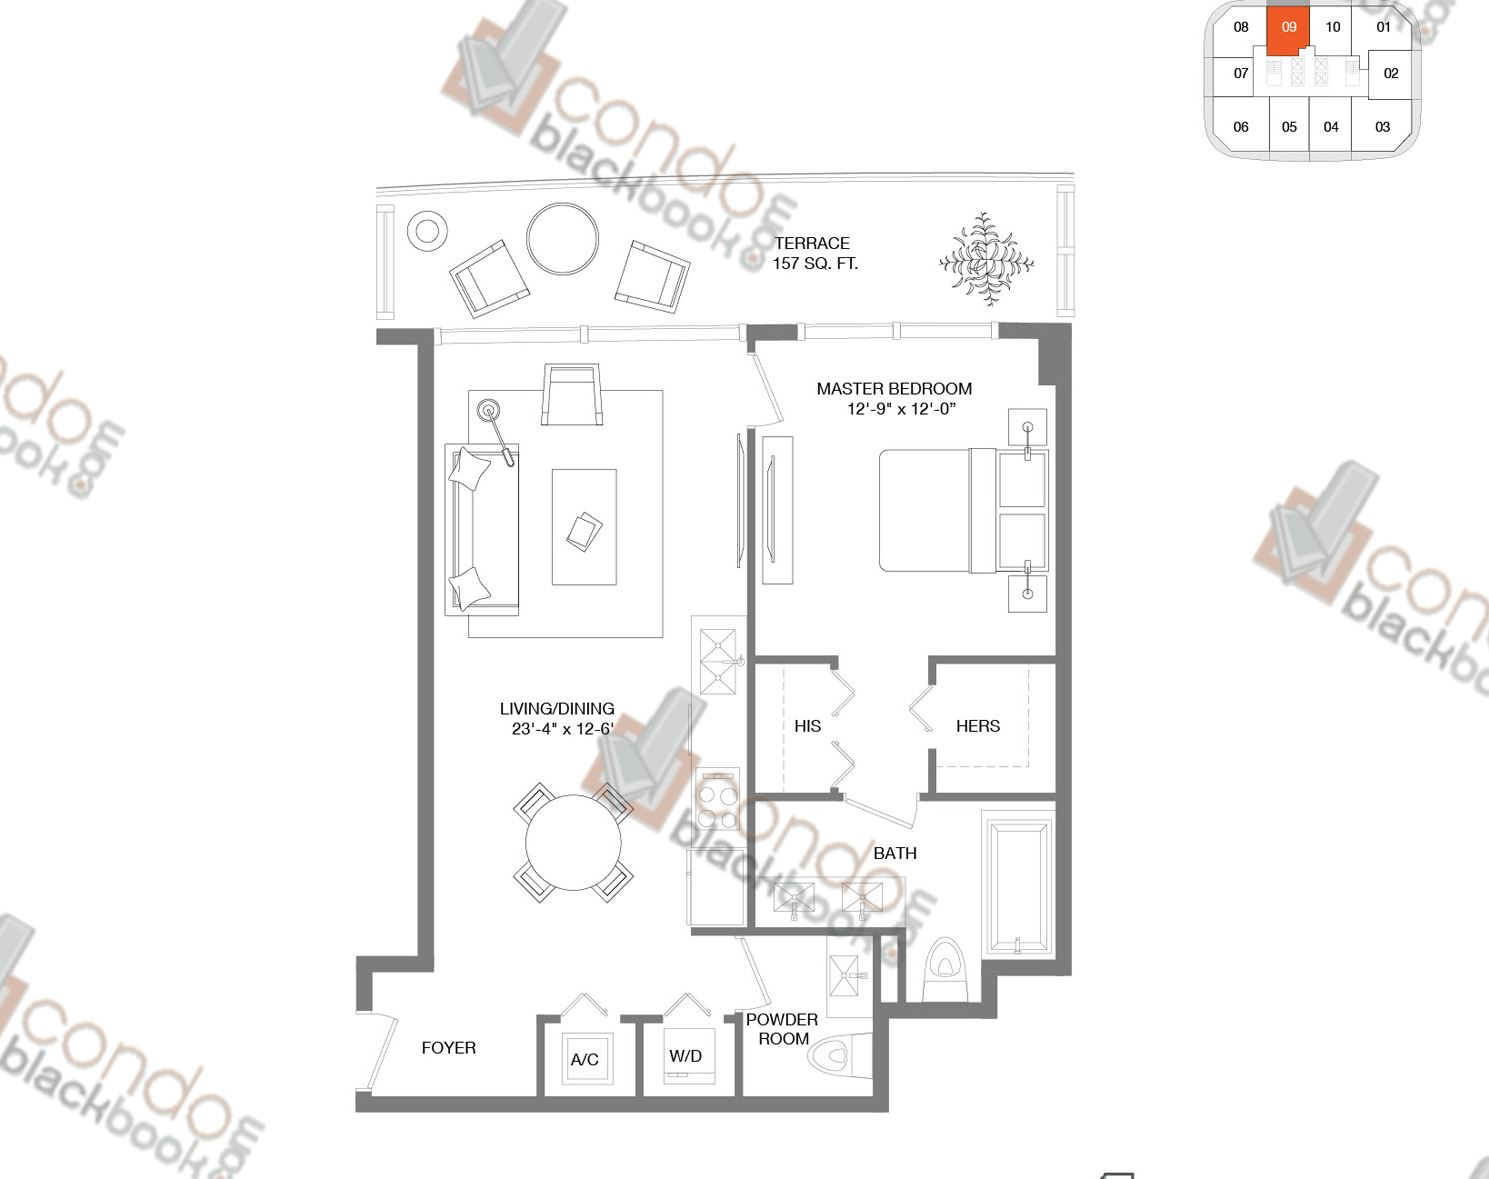 Floor plan for Brickell Heights East Tower Brickell Miami, model Residence 09, line 09, 1/1.5 bedrooms, 856 sq ft